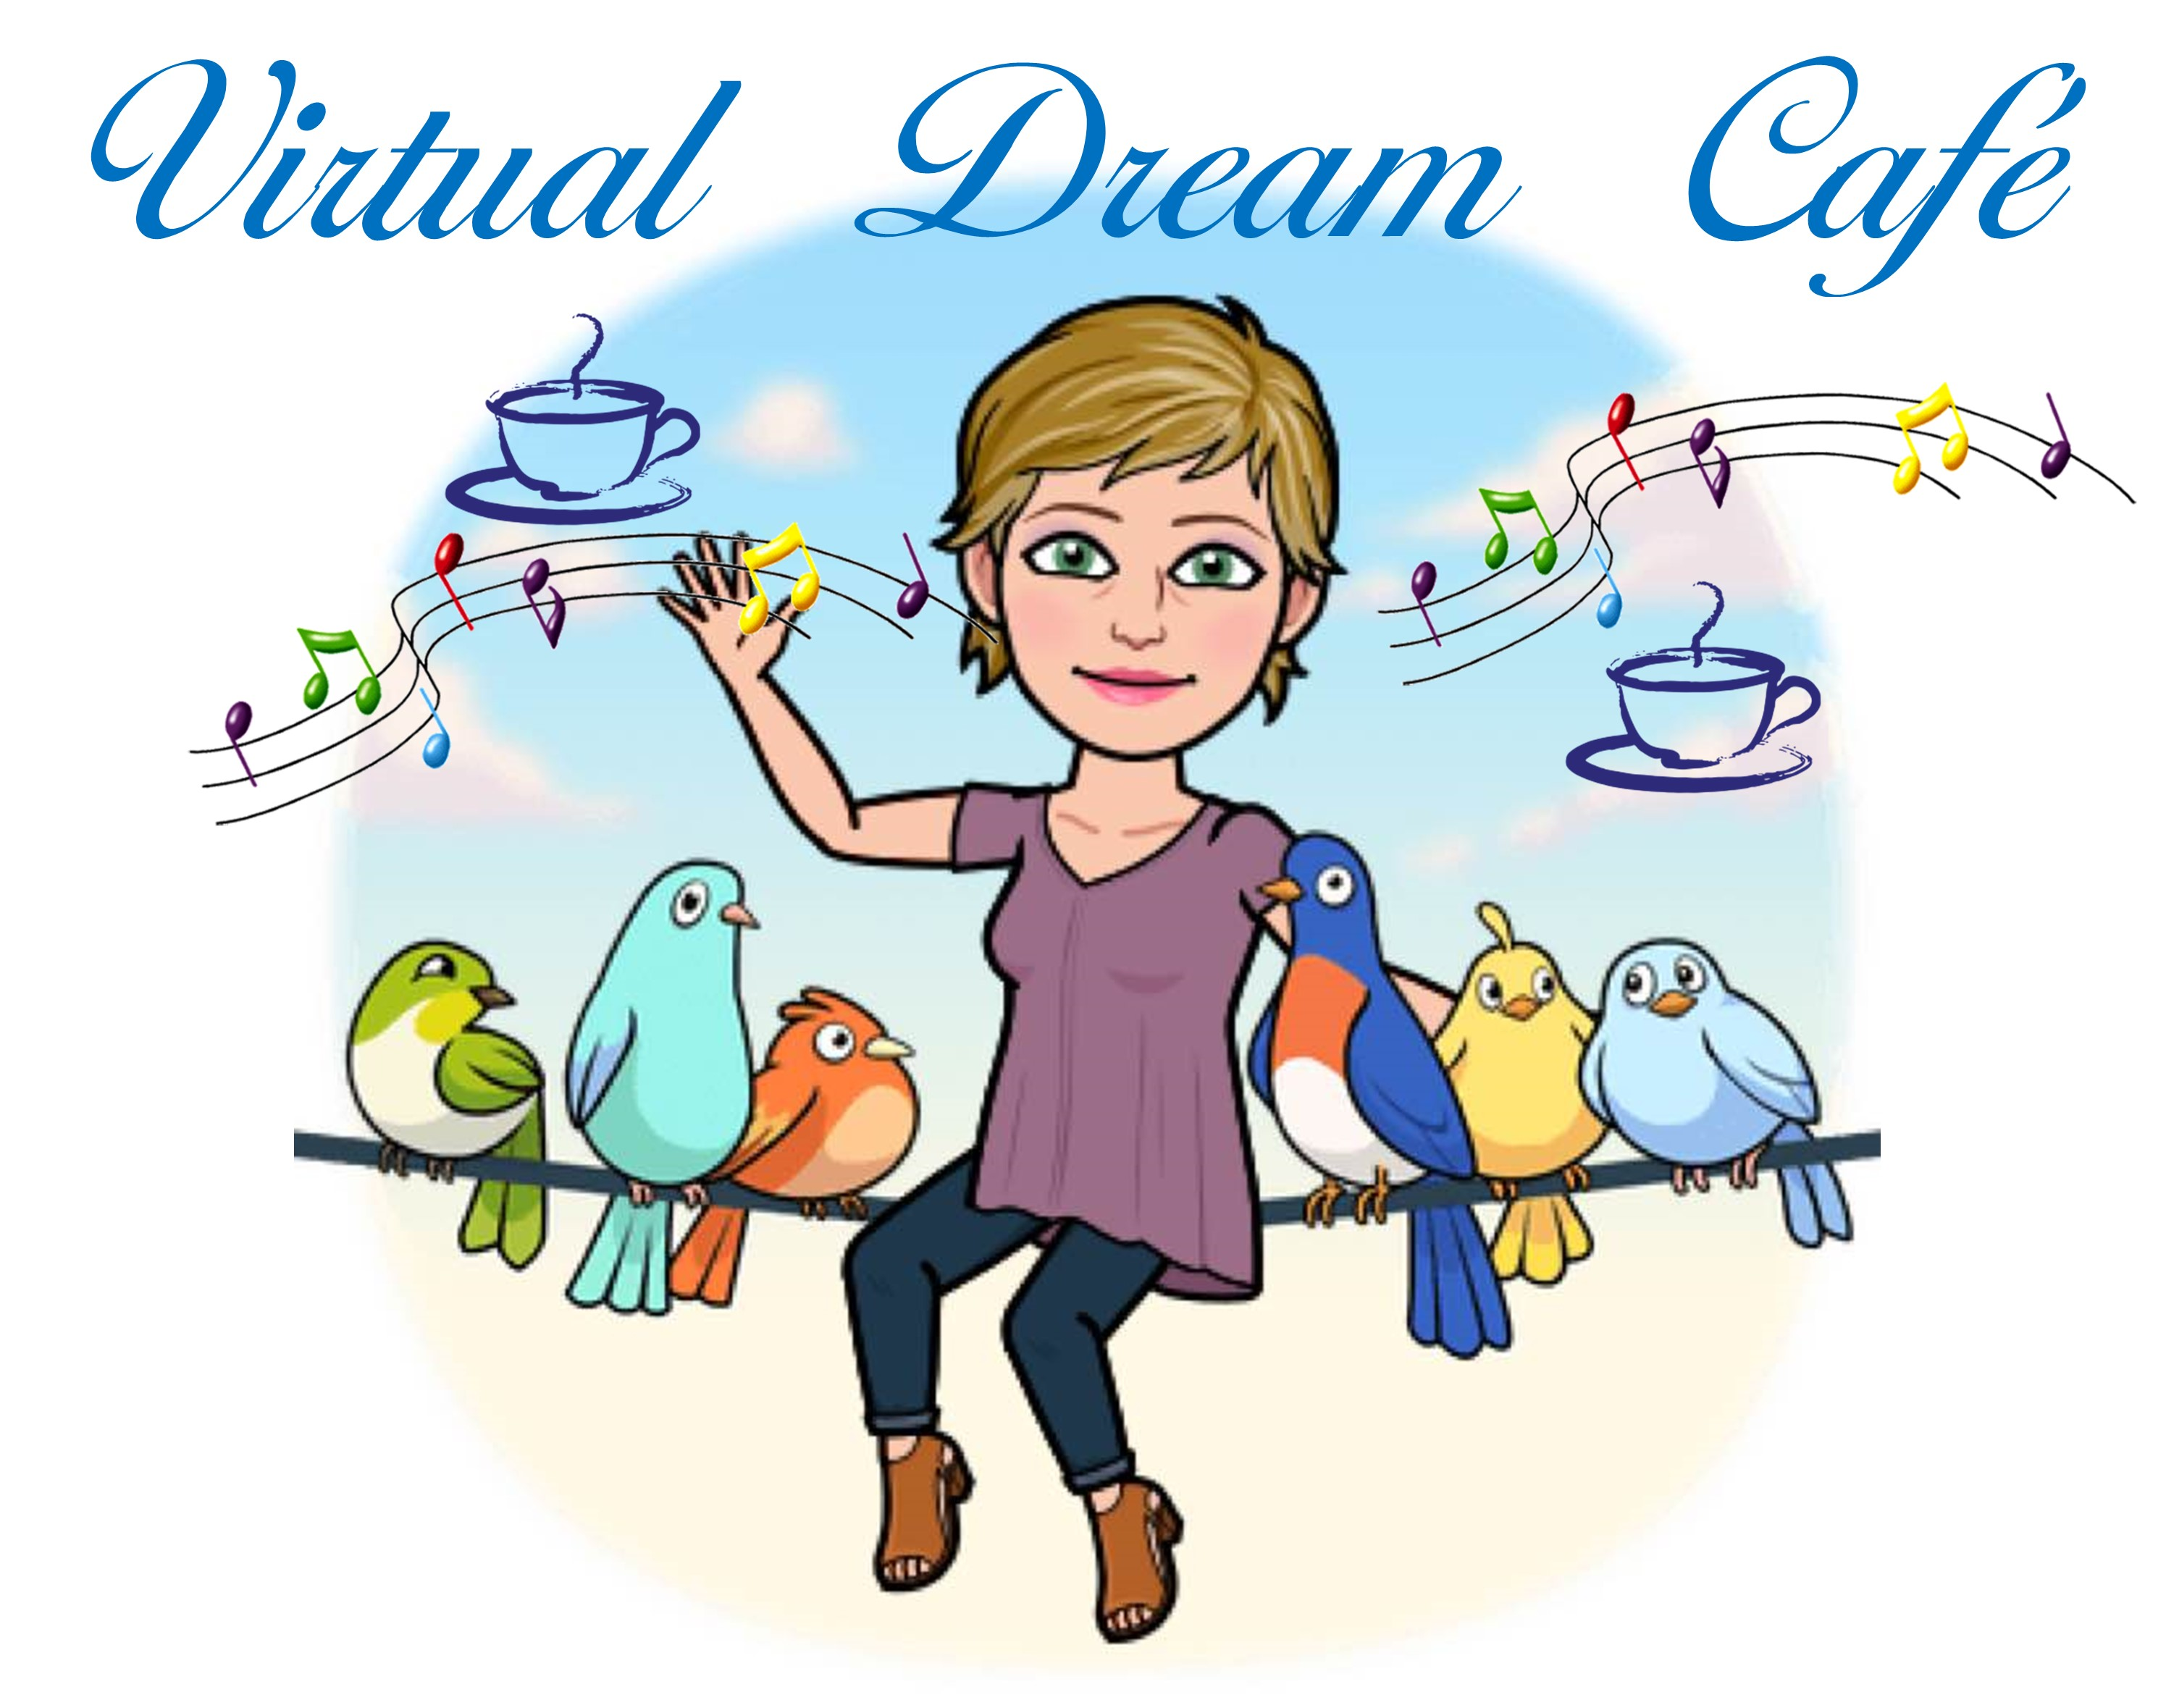 Virtual Dream Cafe